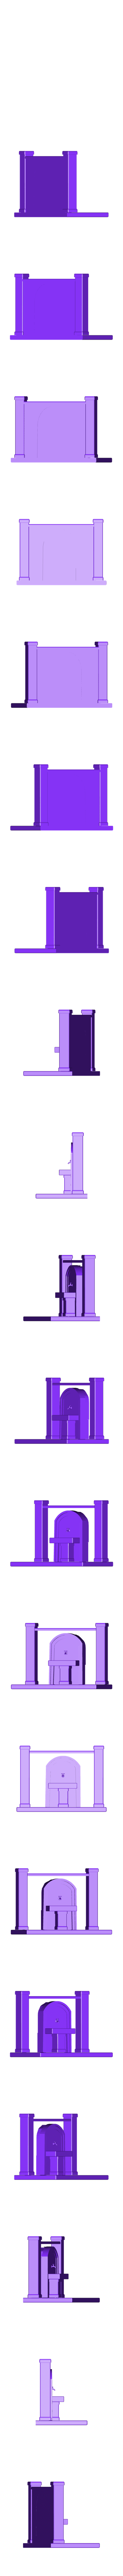 FOUNTAIN.obj Download 3DS file FOUNTAIN • 3D printing template, QKM